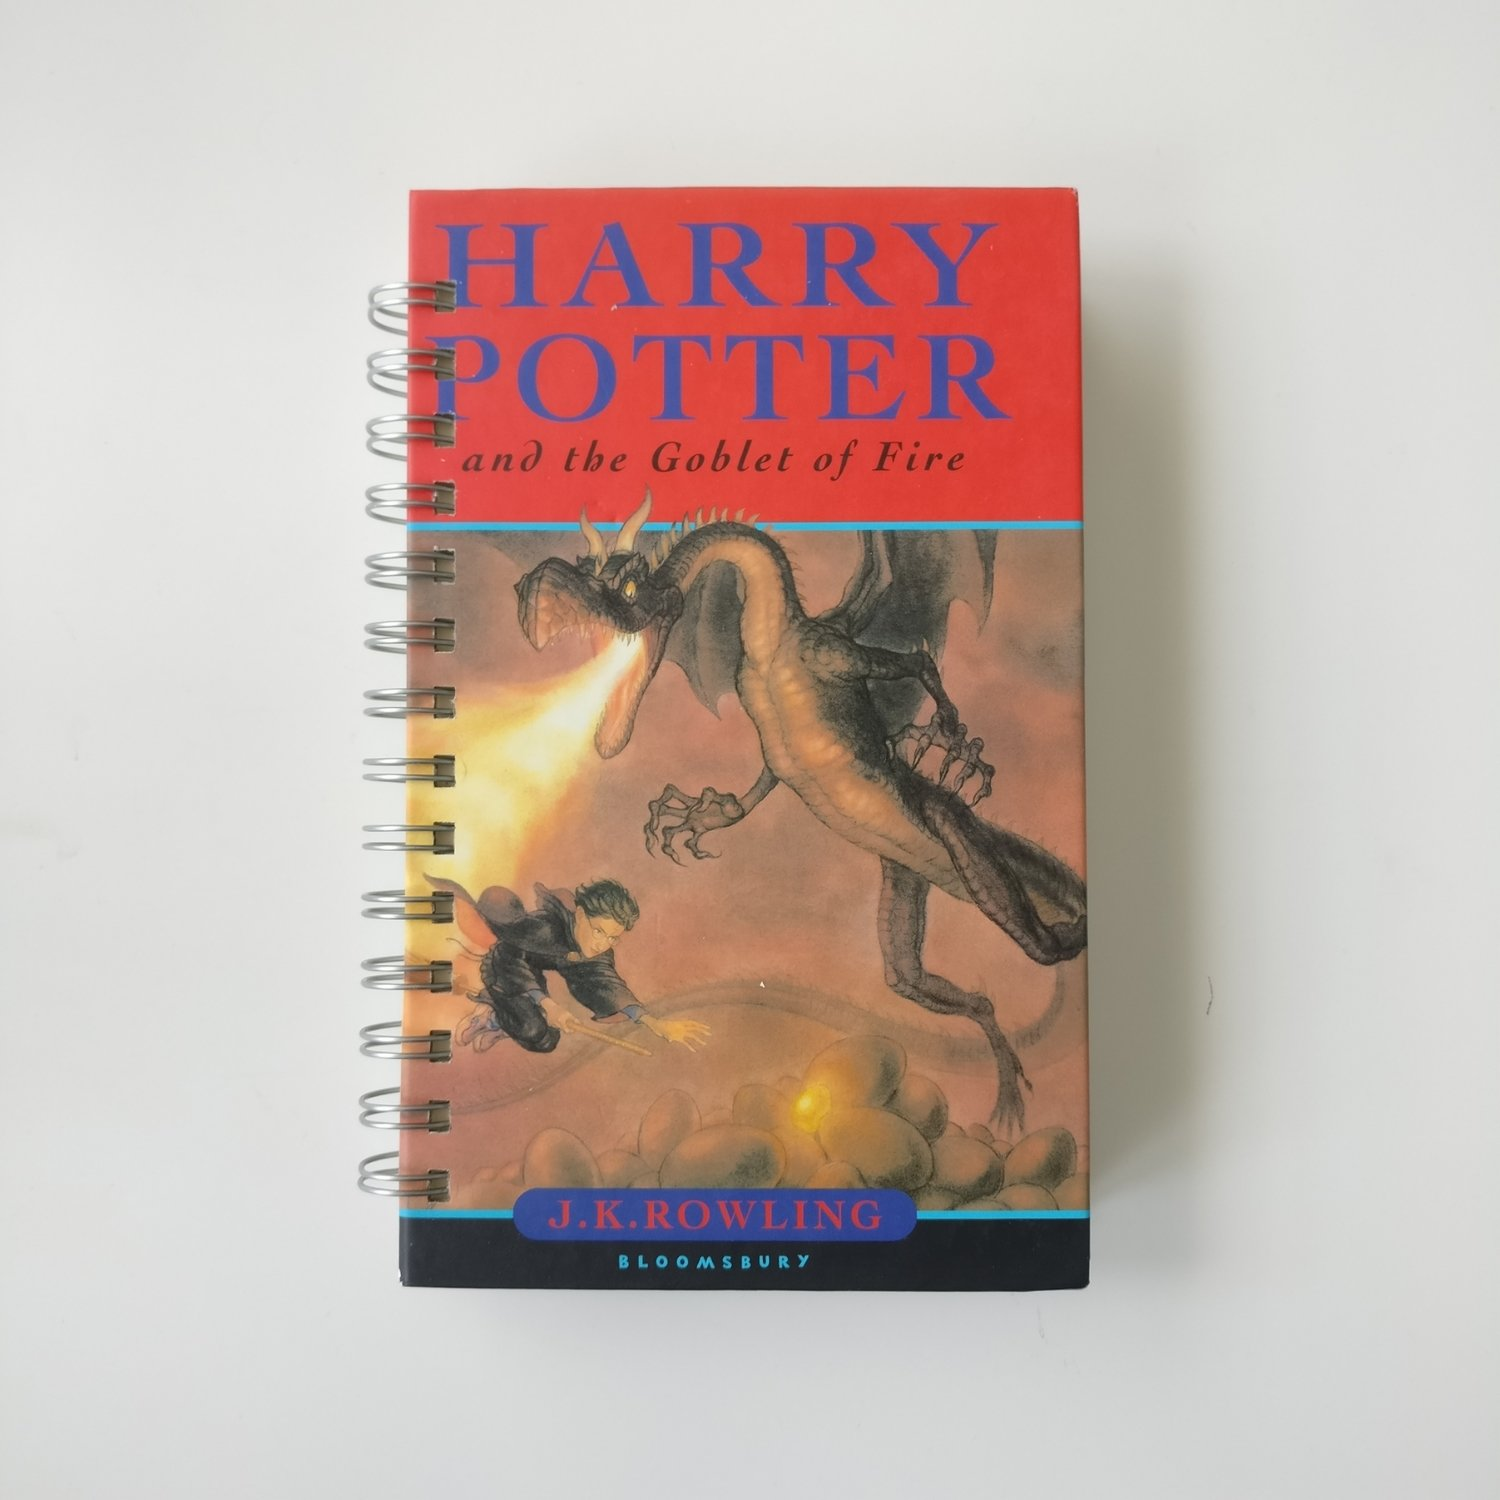 Harry Potter and the Goblet of Fire Notebook made from a dust jacket